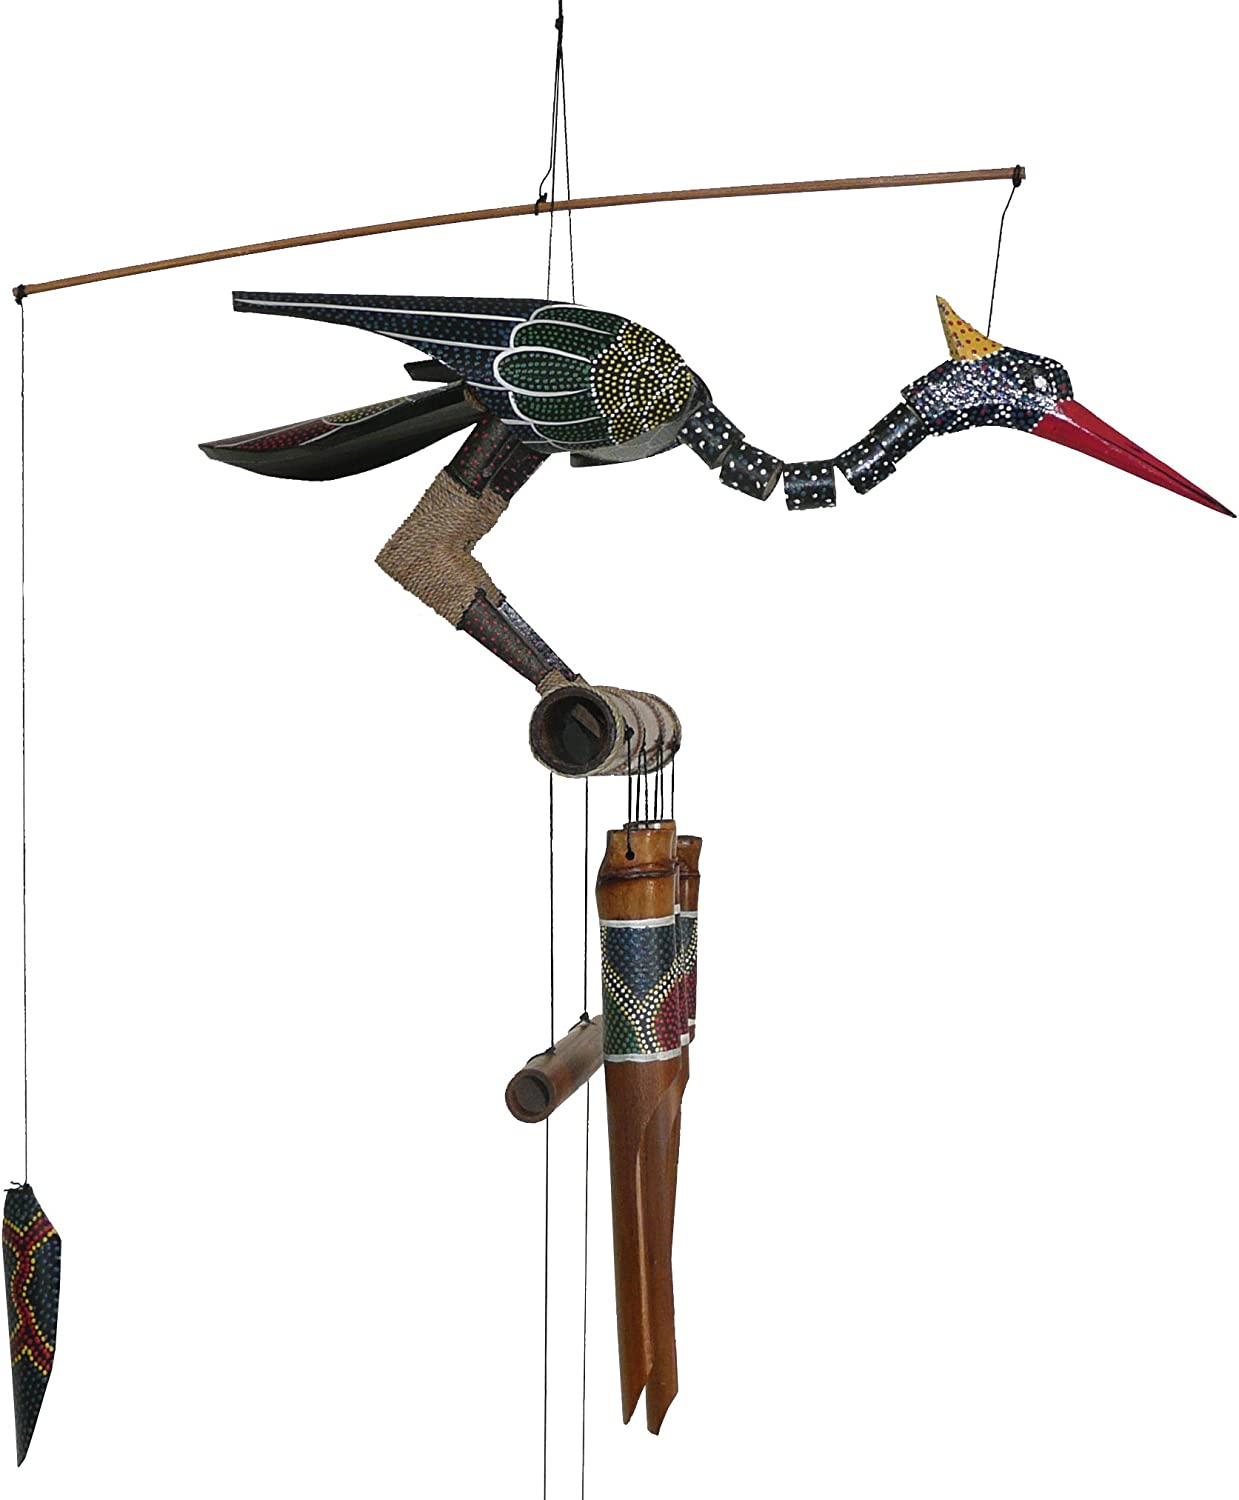 Cohasset Gifts 174A It is very popular Abby Bobbing Bird Max 69% OFF Wind Head Bamboo